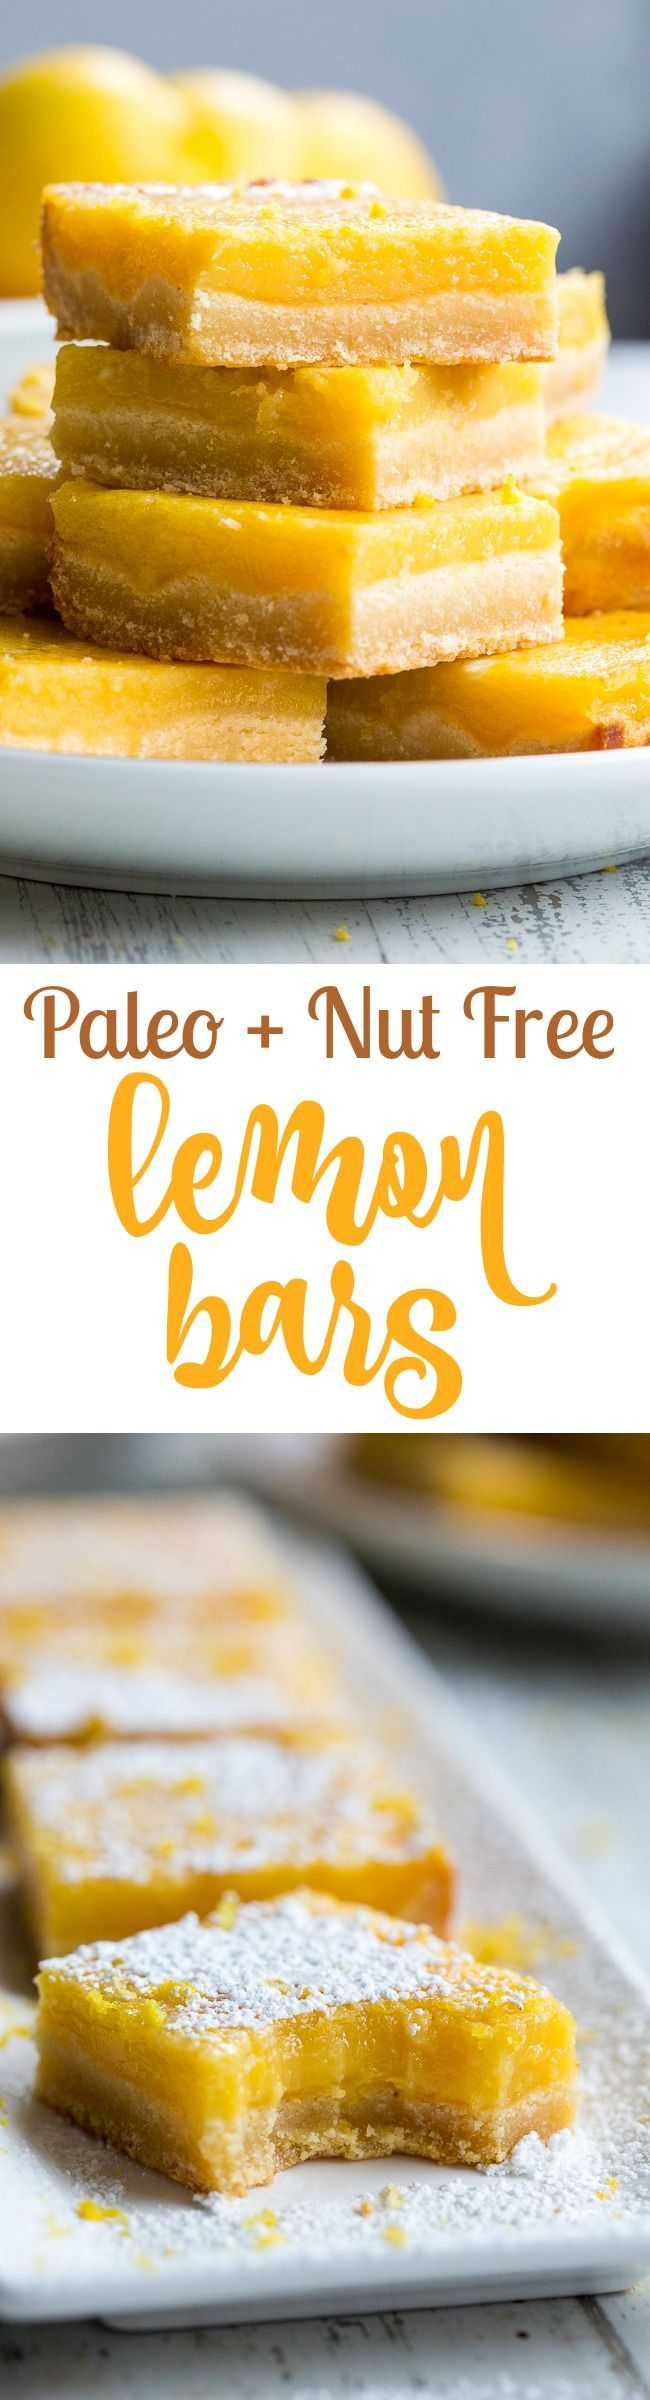 These creamy paleo lemon bars have a nut free, grain free honey-sweetened shortbread crust with a perfectly sweet-tart lemon custard layer to top!  Dust with organic powdered sugar or dollop with coconut whipped cream for a deliciously dreamy dessert!